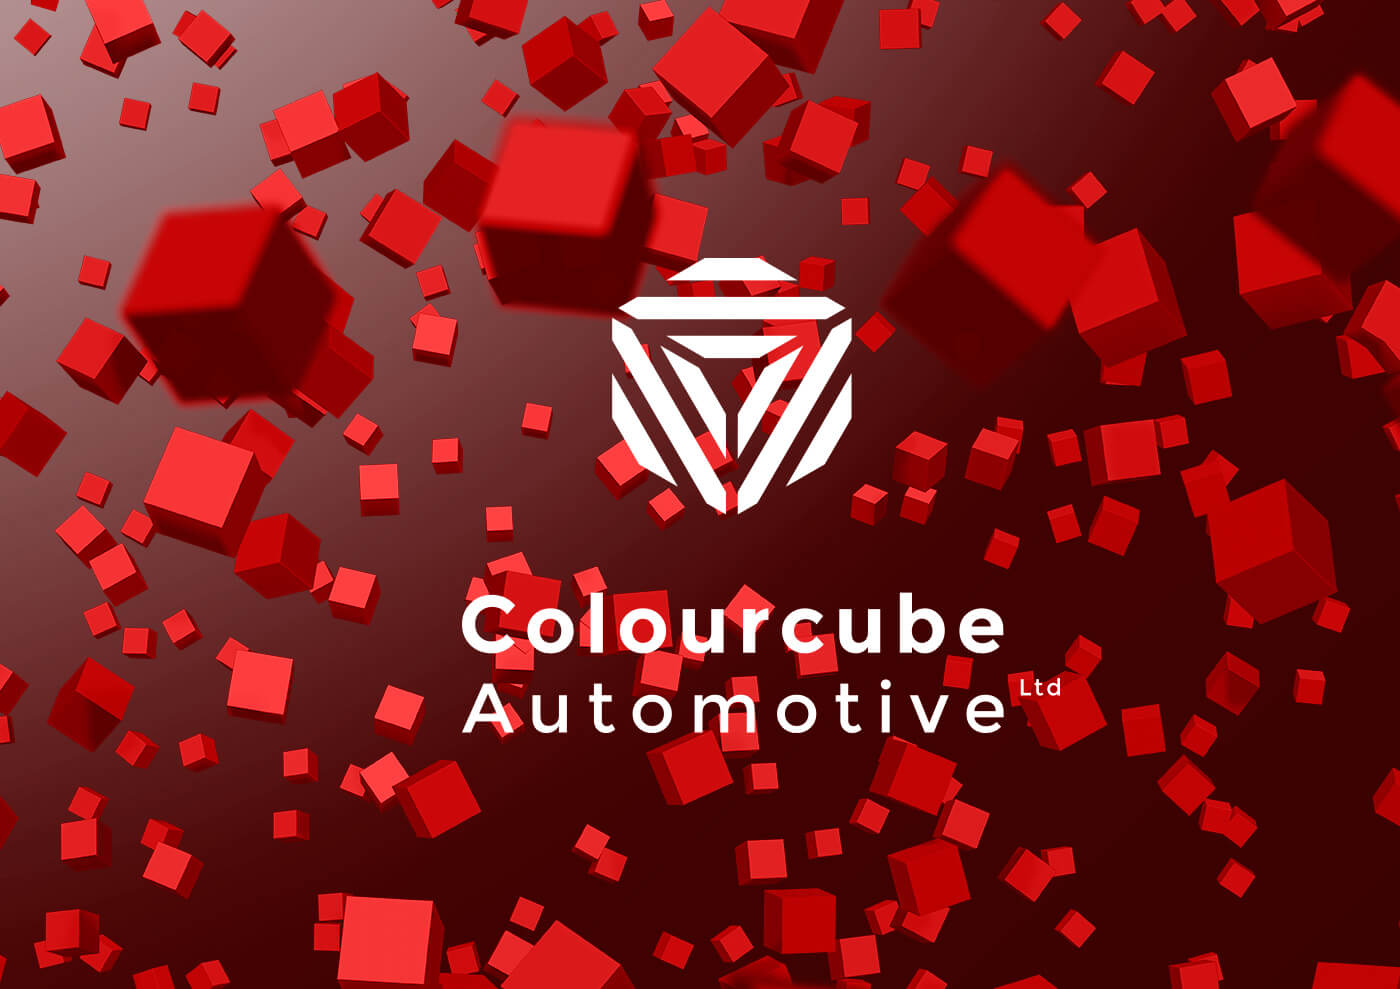 colourcube branded image